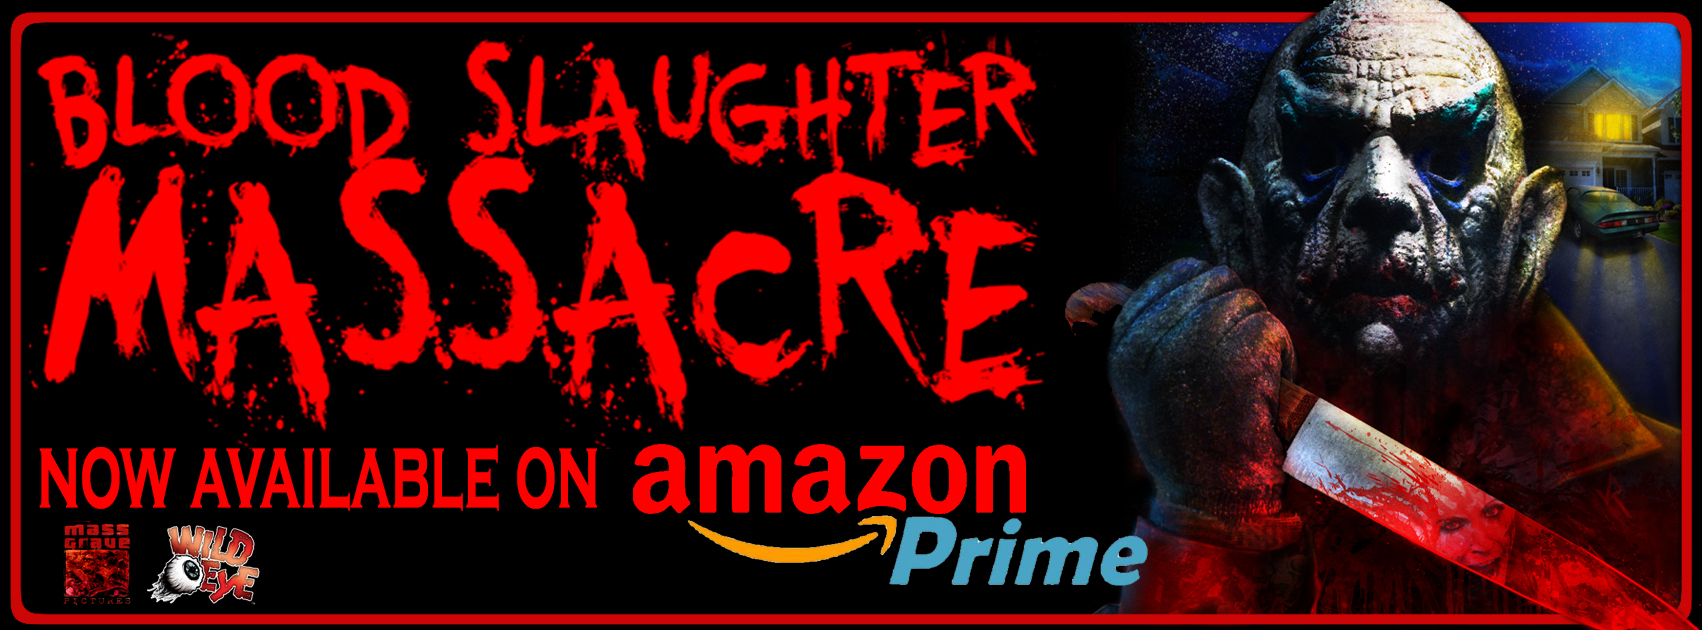 https://www.amazon.com/Blood-Slaughter-Massacre-Manny-Serrano/dp/B07MKJHPBG/ref=sr_1_1?s=instant-video&ie=UTF8&qid=1546208366&sr=1-1&keywords=blood+slaughter+massacre